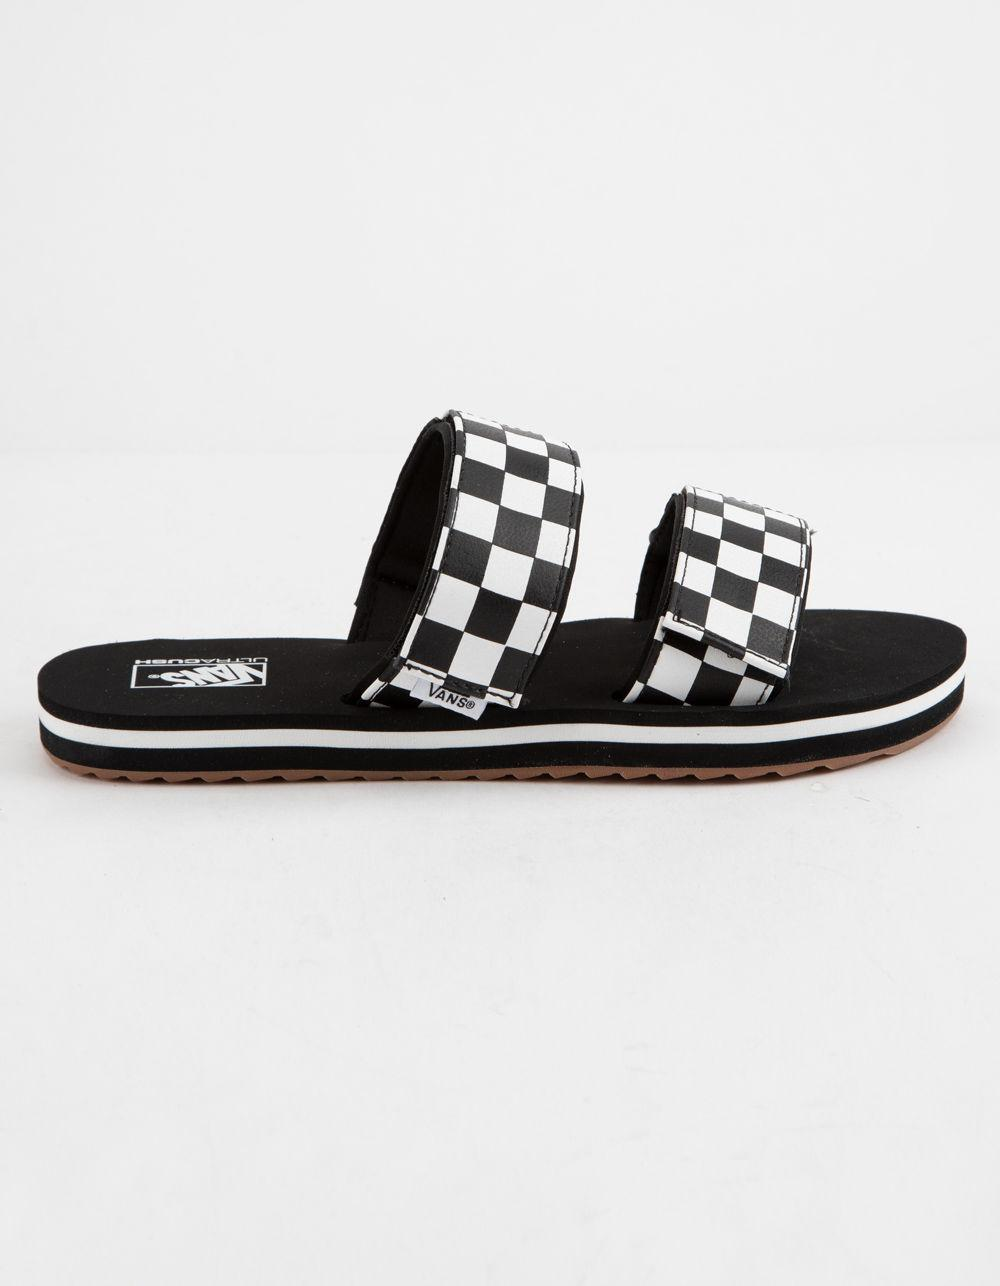 693baf41ca4 Vans - Black Cayucas Checkerboard Womens Slides - Lyst. View fullscreen